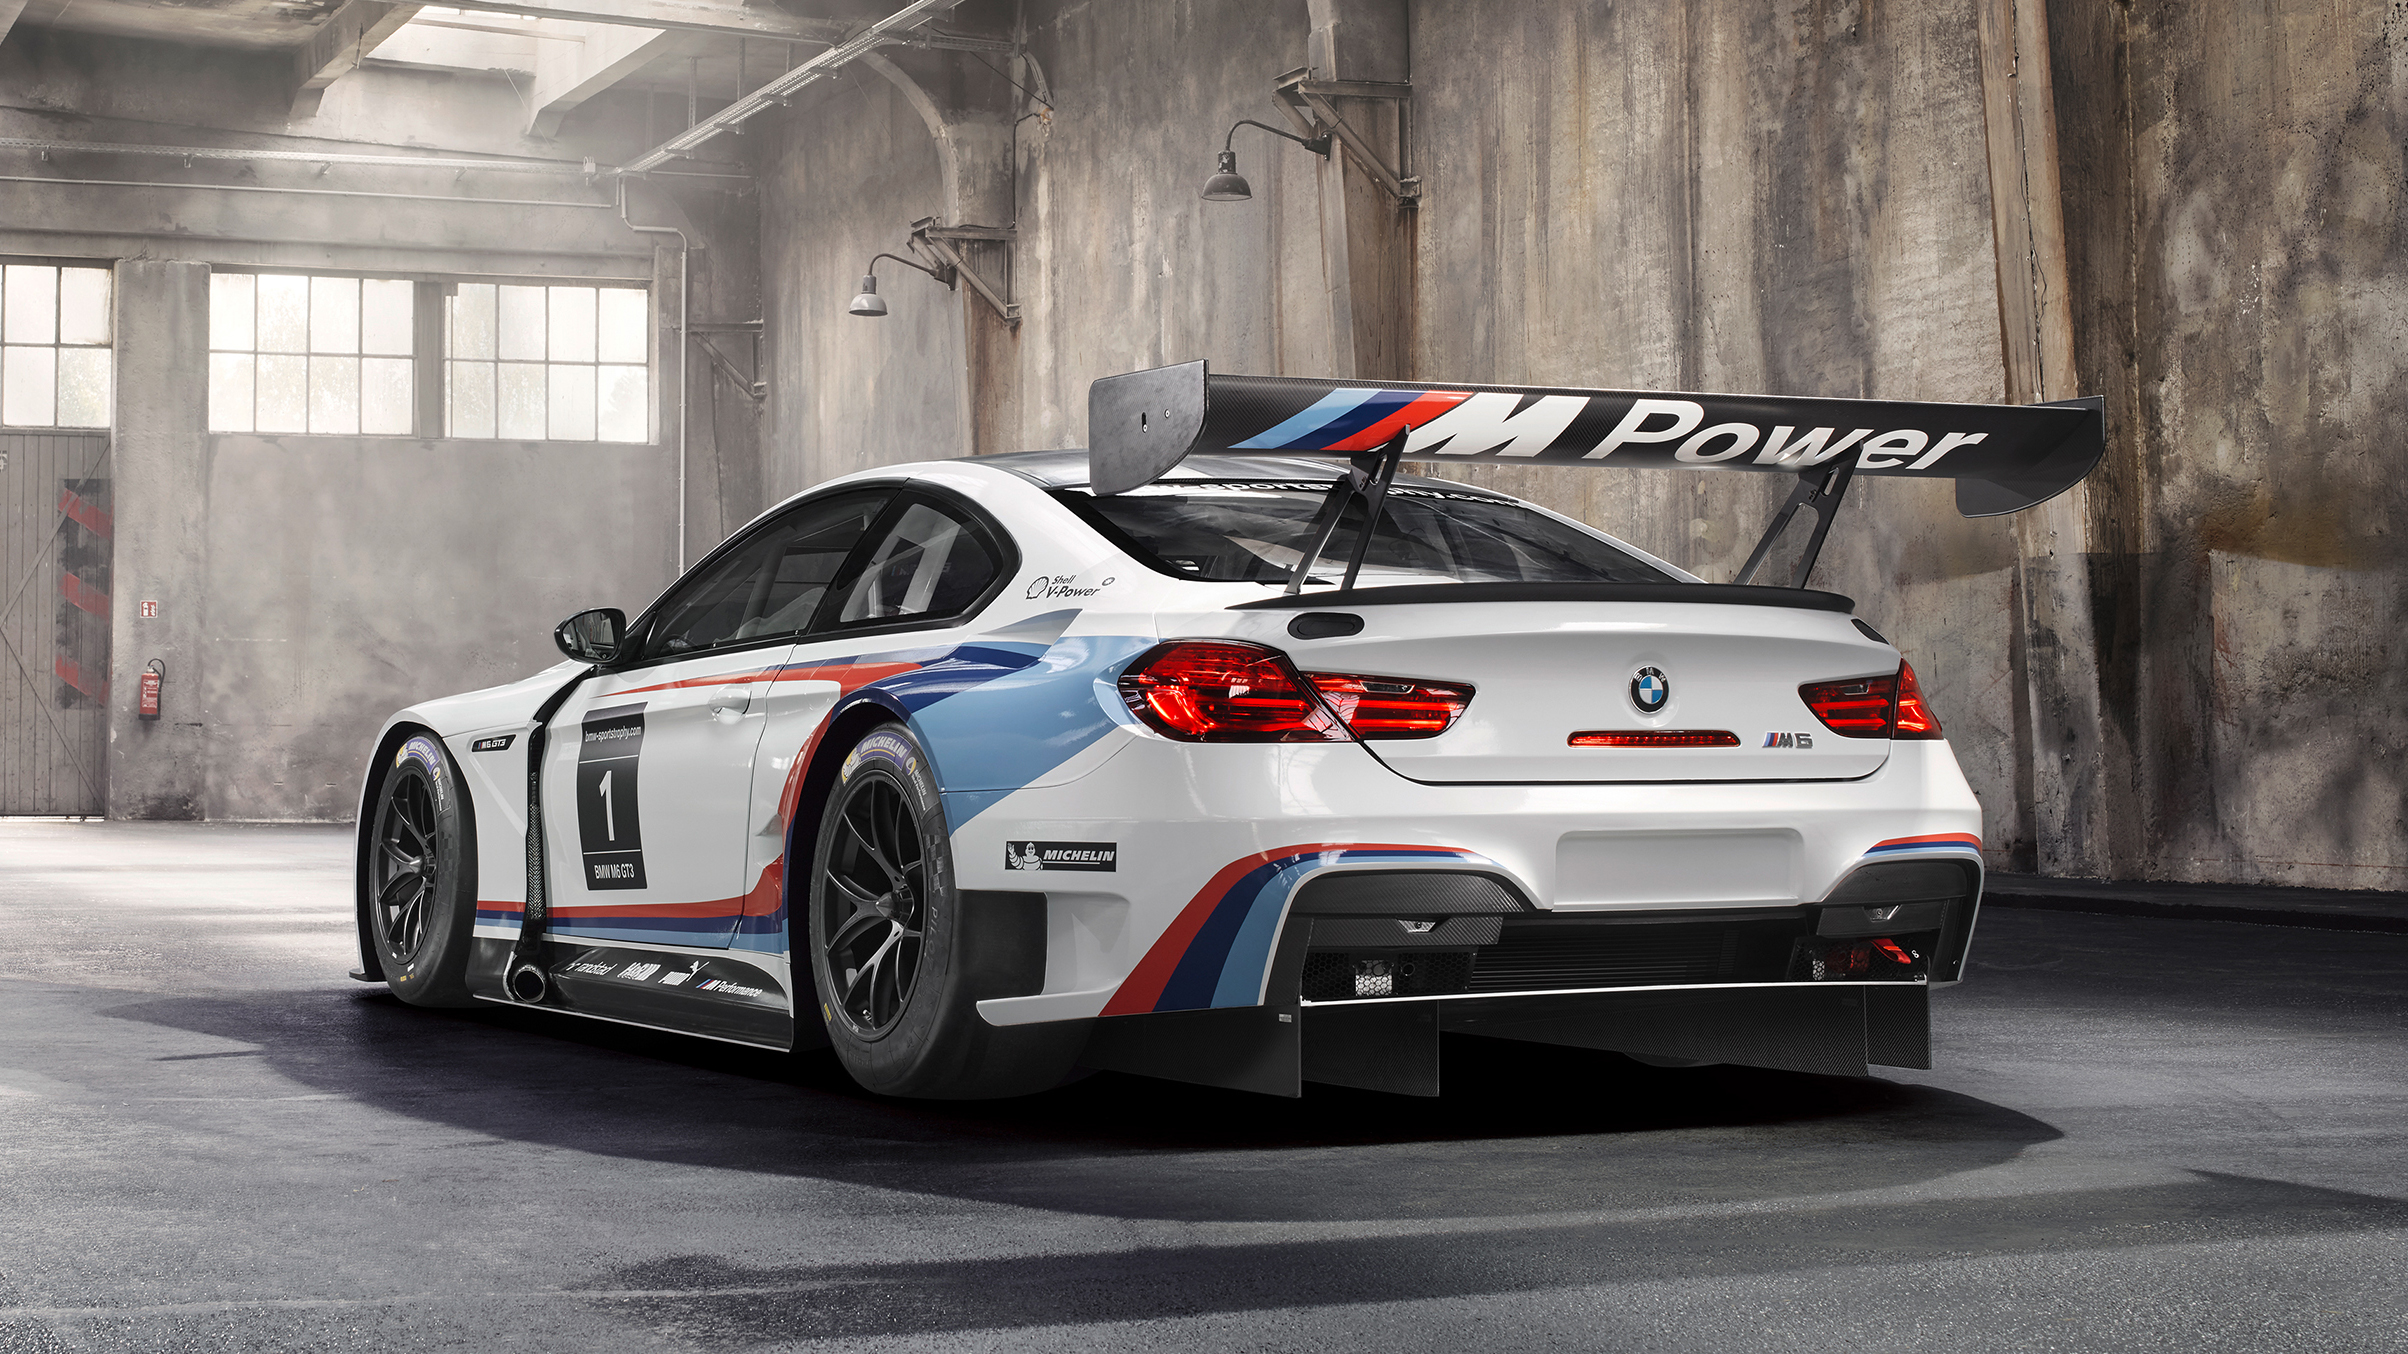 The Bmw M6 Gt3 Is A Big Winged Beast Of A Race Car Top Gear